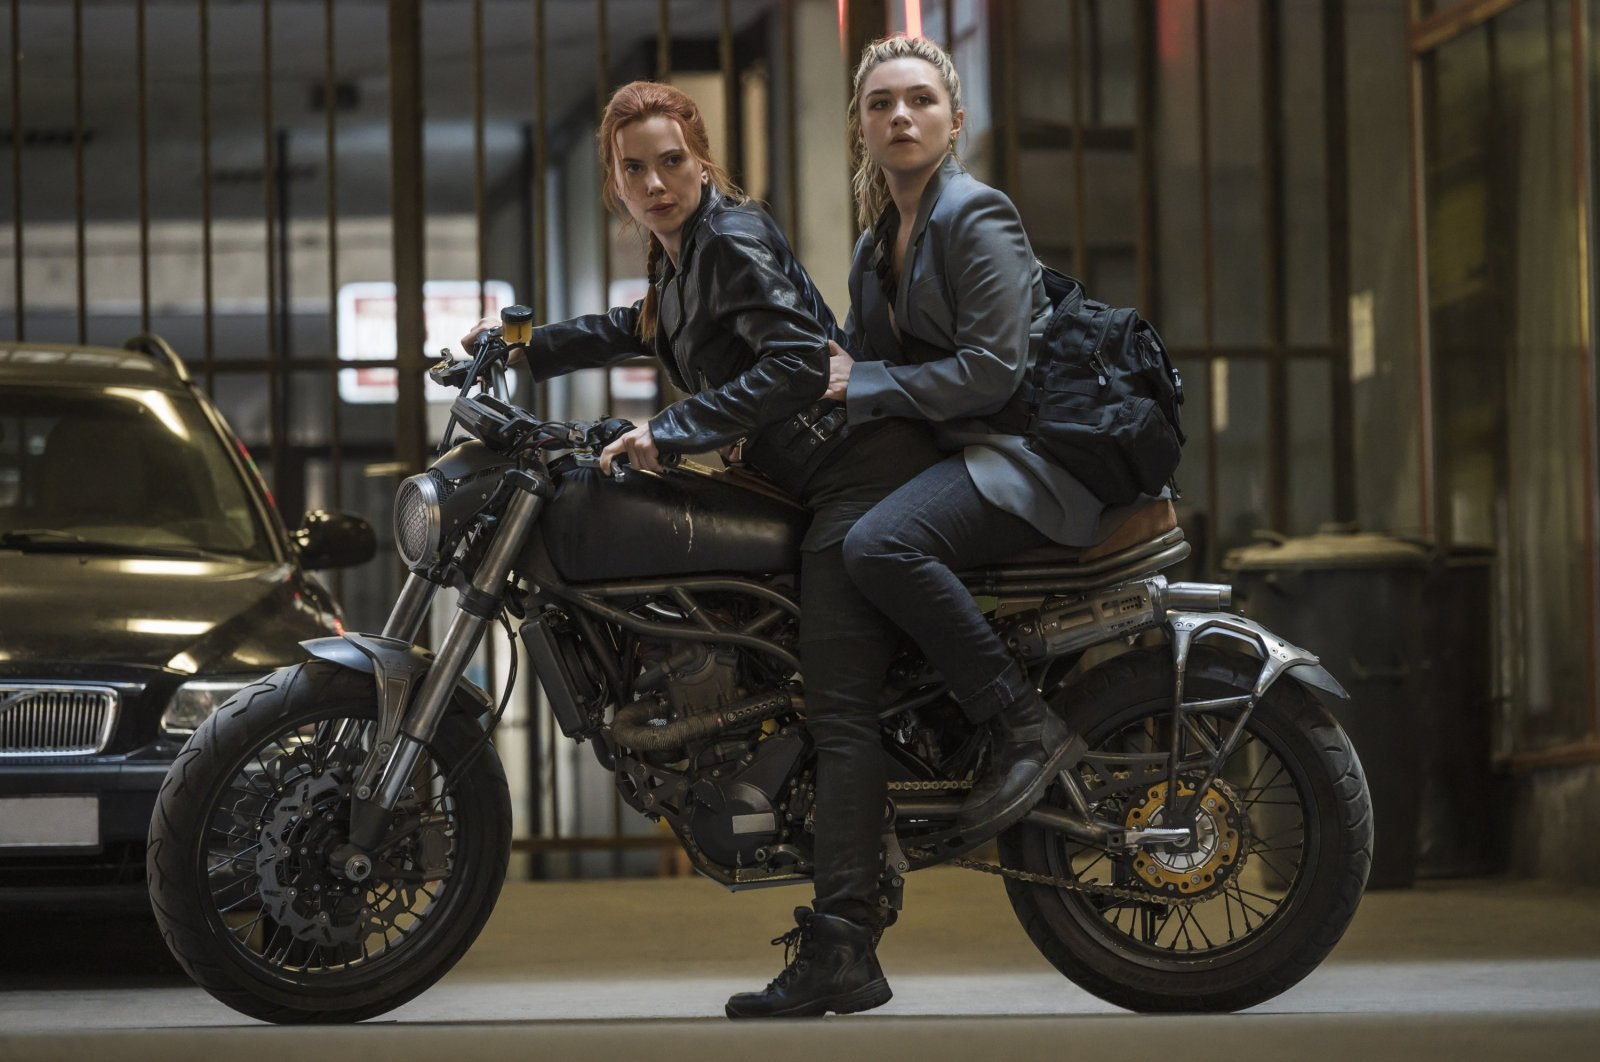 """Scarlett Johansson (L) rides a motorcycle with Florence Pugh in a scene from the Marvel superhero film """"Black Widow."""" (AP Photo)"""